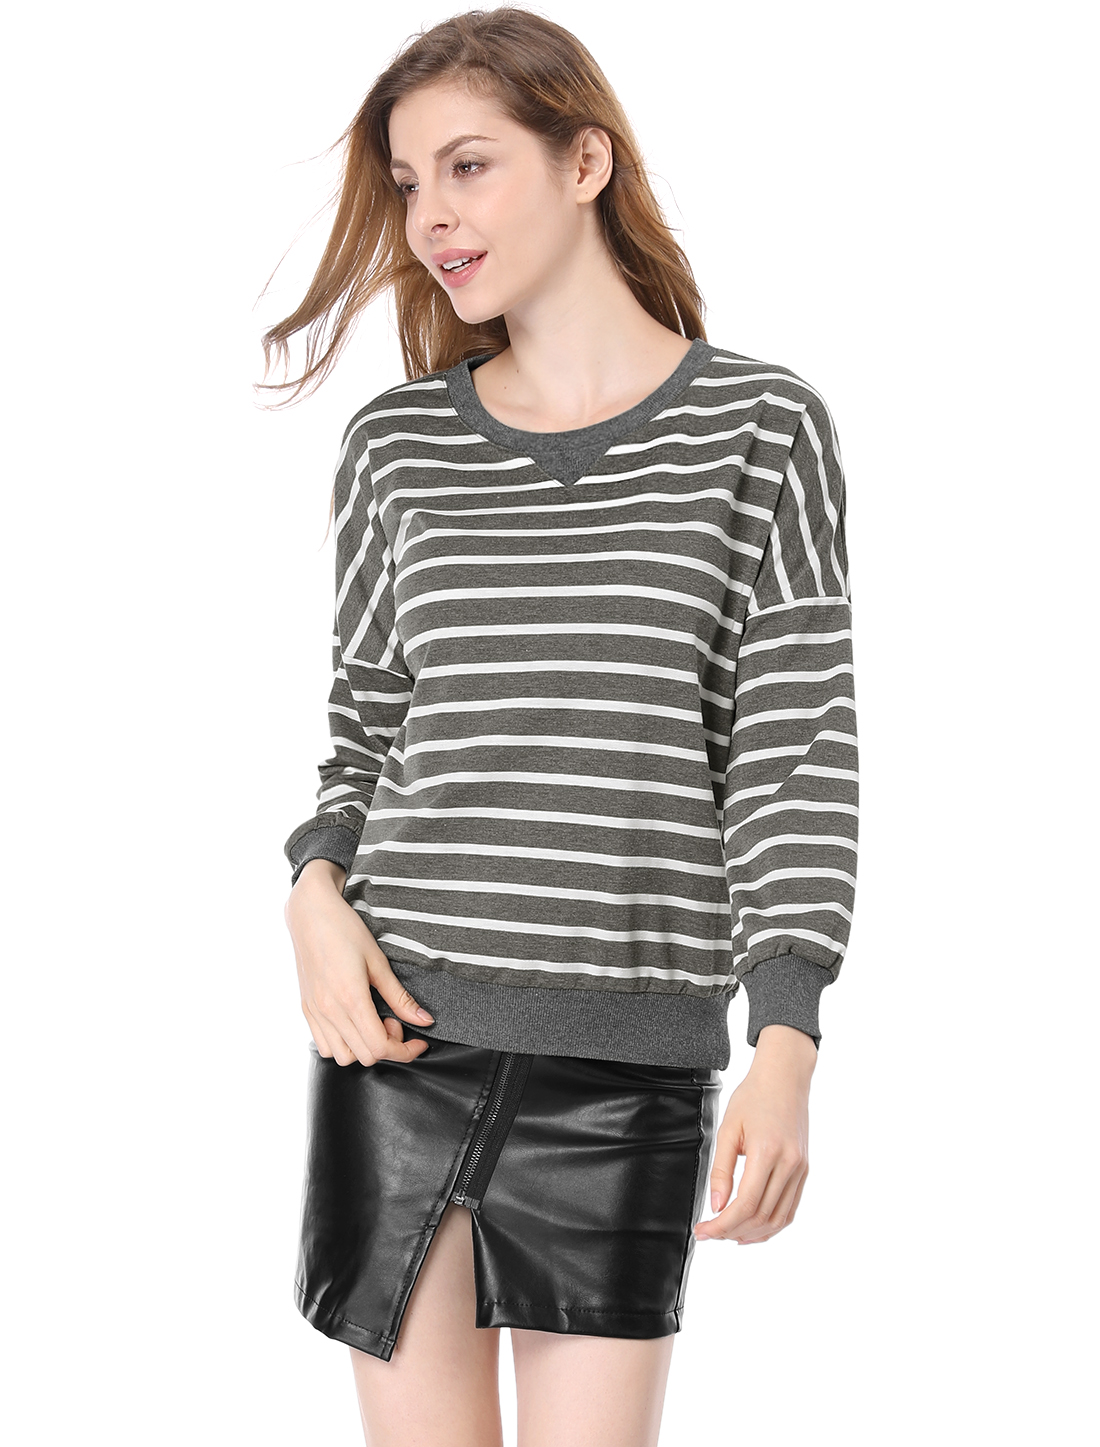 Women Round Neck Long Sleeves Loose Striped Sweatshirt Gray S